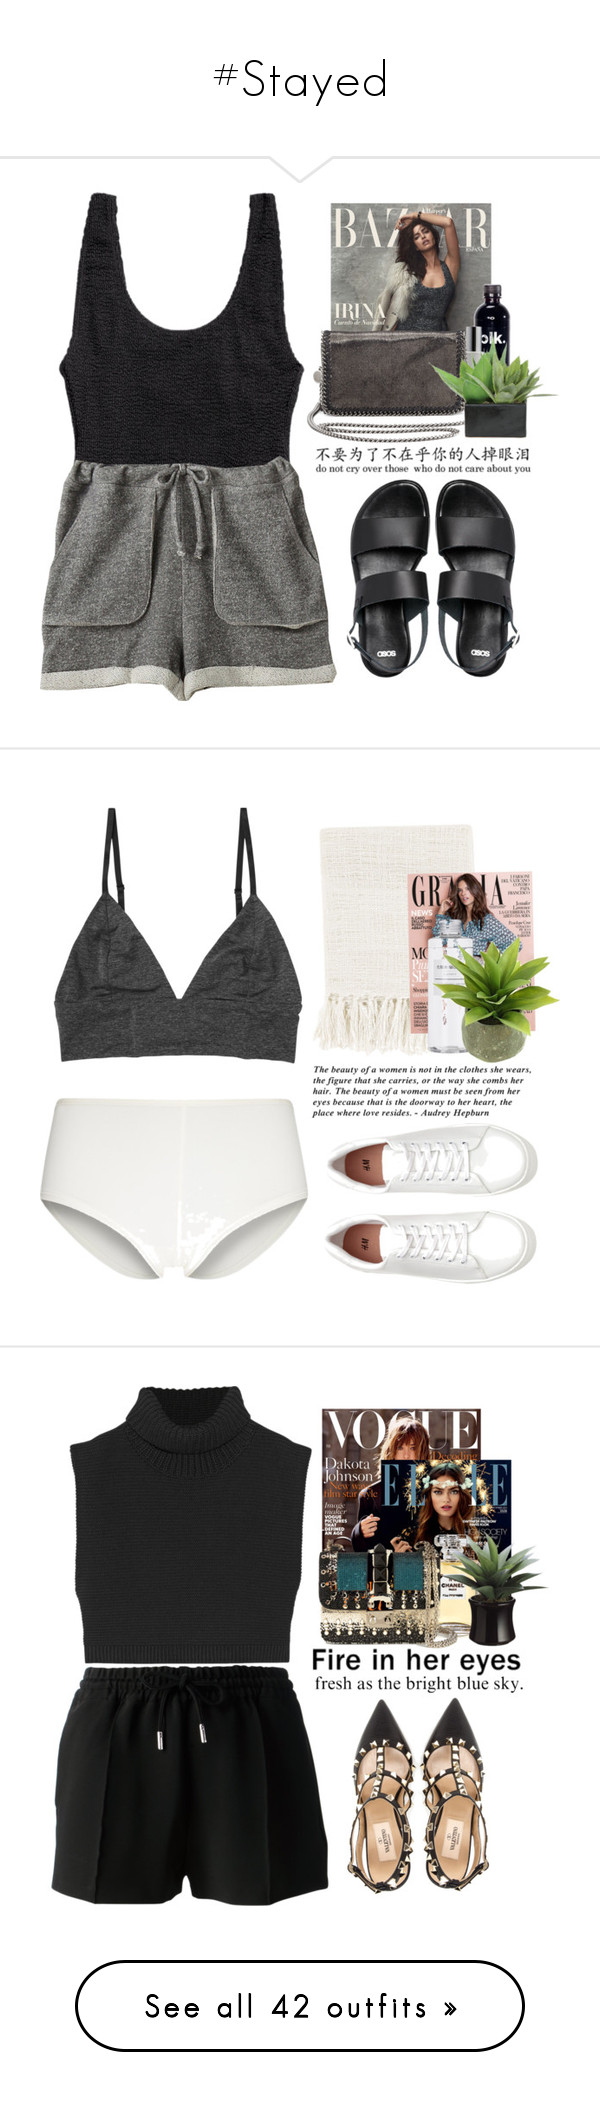 """#Stayed"" by lolgenie ❤ liked on Polyvore featuring H&M, Zoe Tee's, Colbert MD, STELLA McCARTNEY, Lux-Art Silks, ASOS, Monki, Surya, Muji and Victoria Beckham"